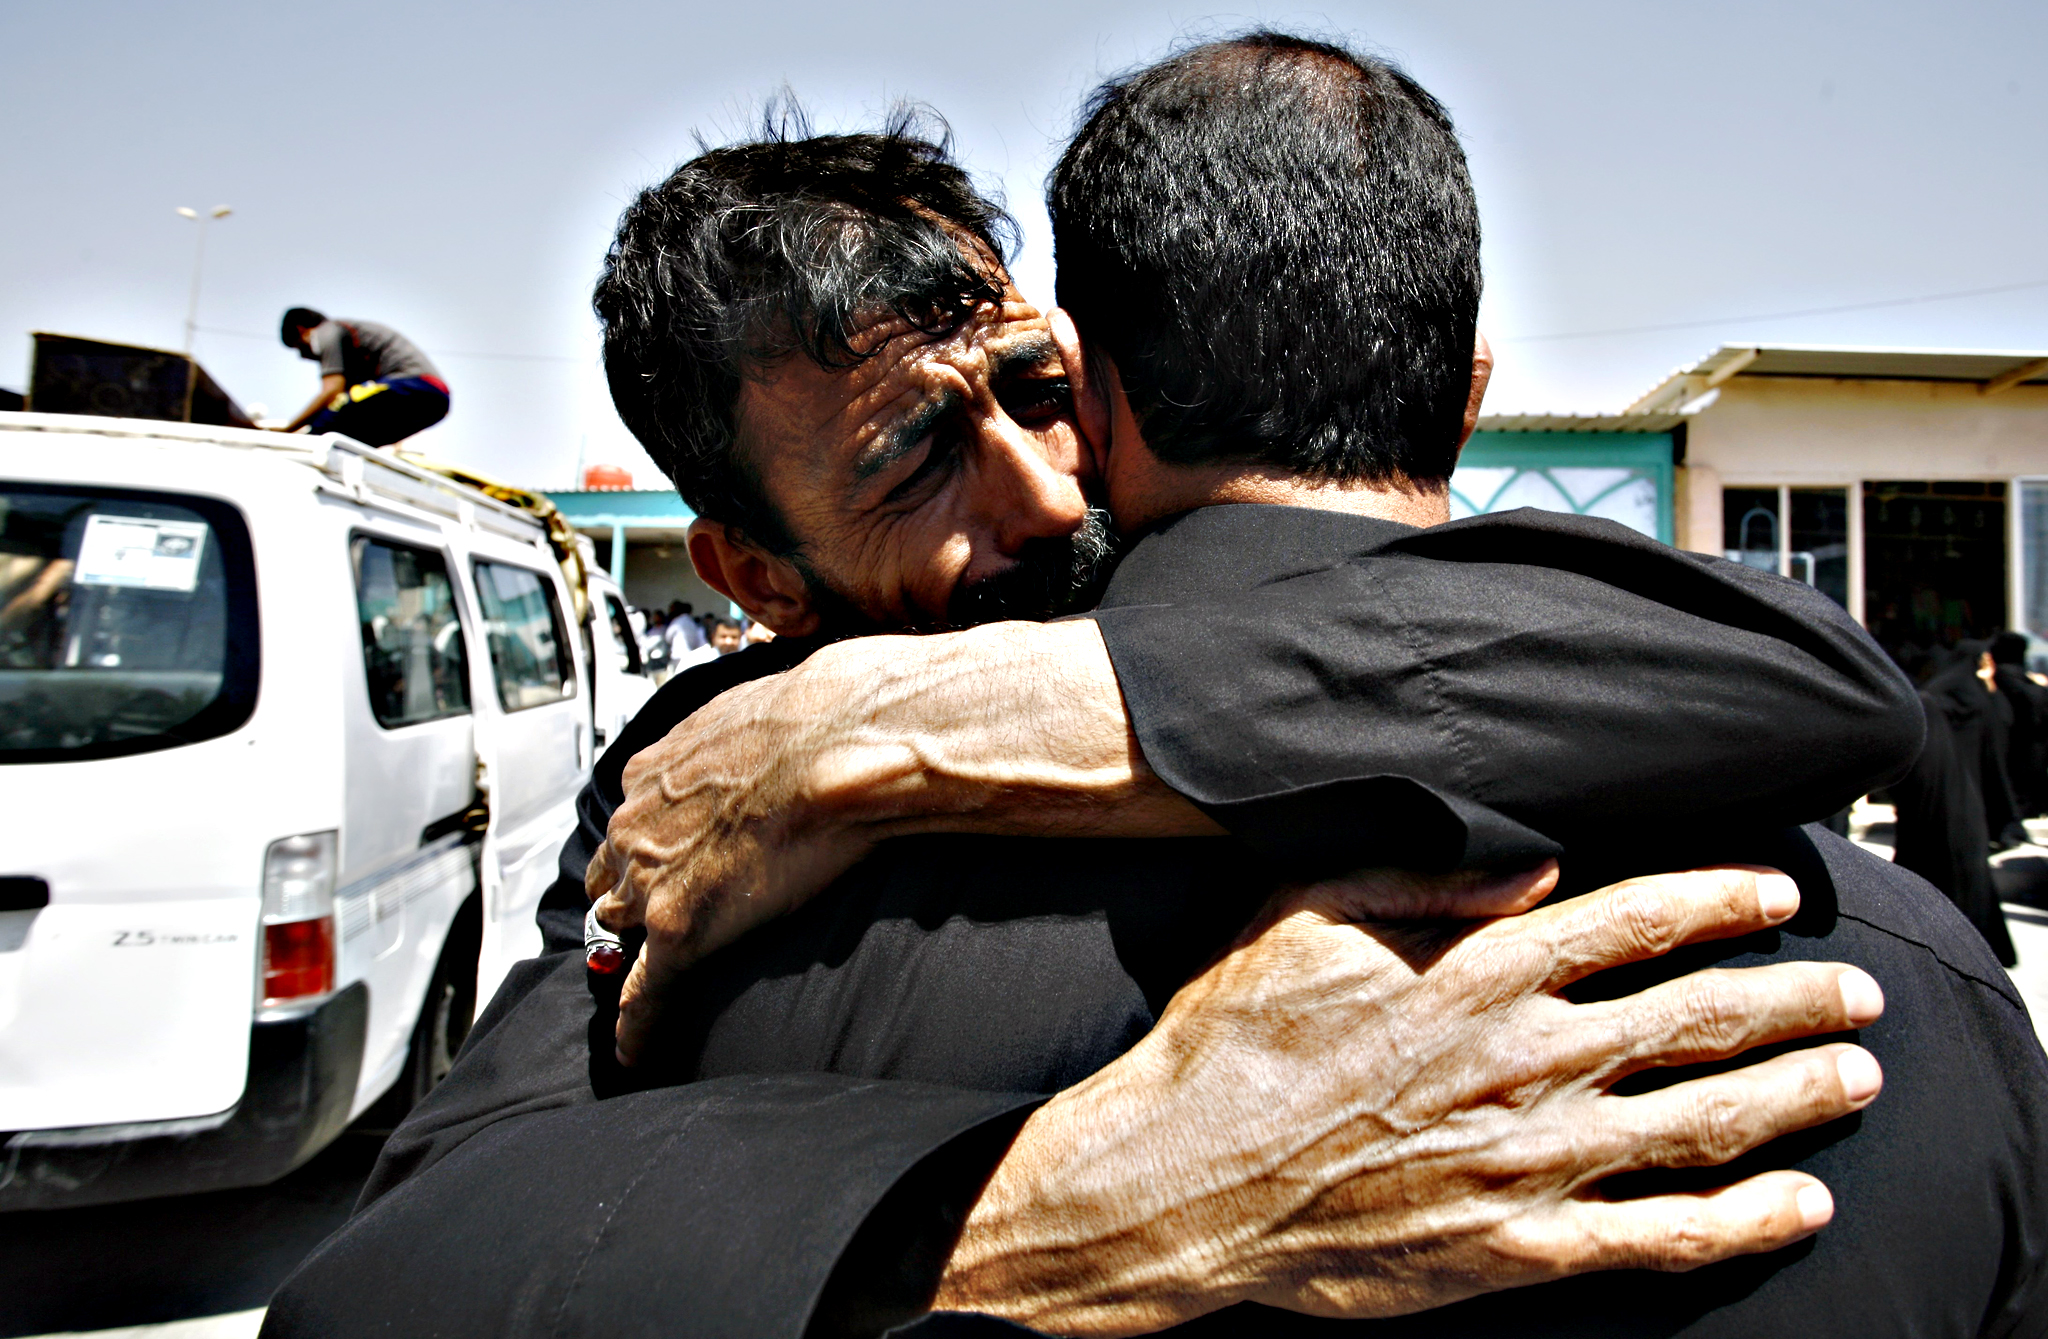 Iraqi men mourn outside a mosque in the holy city of Najaf on Thursday during the funeral of Shia victims of this morning's truck bombing in Baghdad's northern suburb of Sadr City